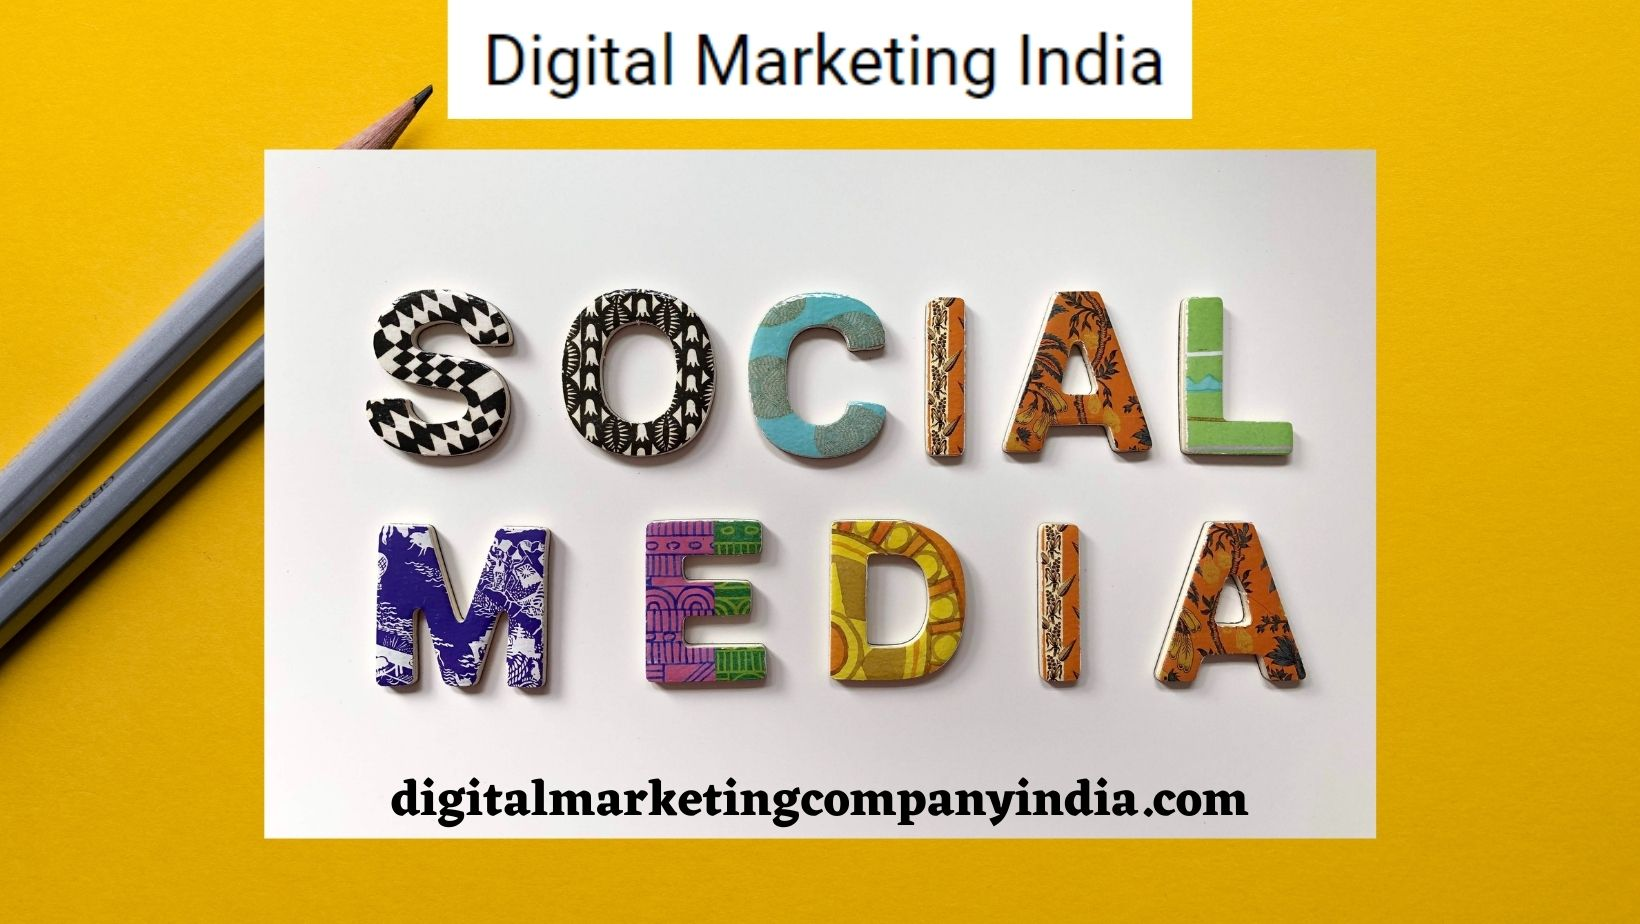 IS IT WORTH TO INVEST IN SOCIAL MEDIA MARKETING SERVICES IN INDIA?